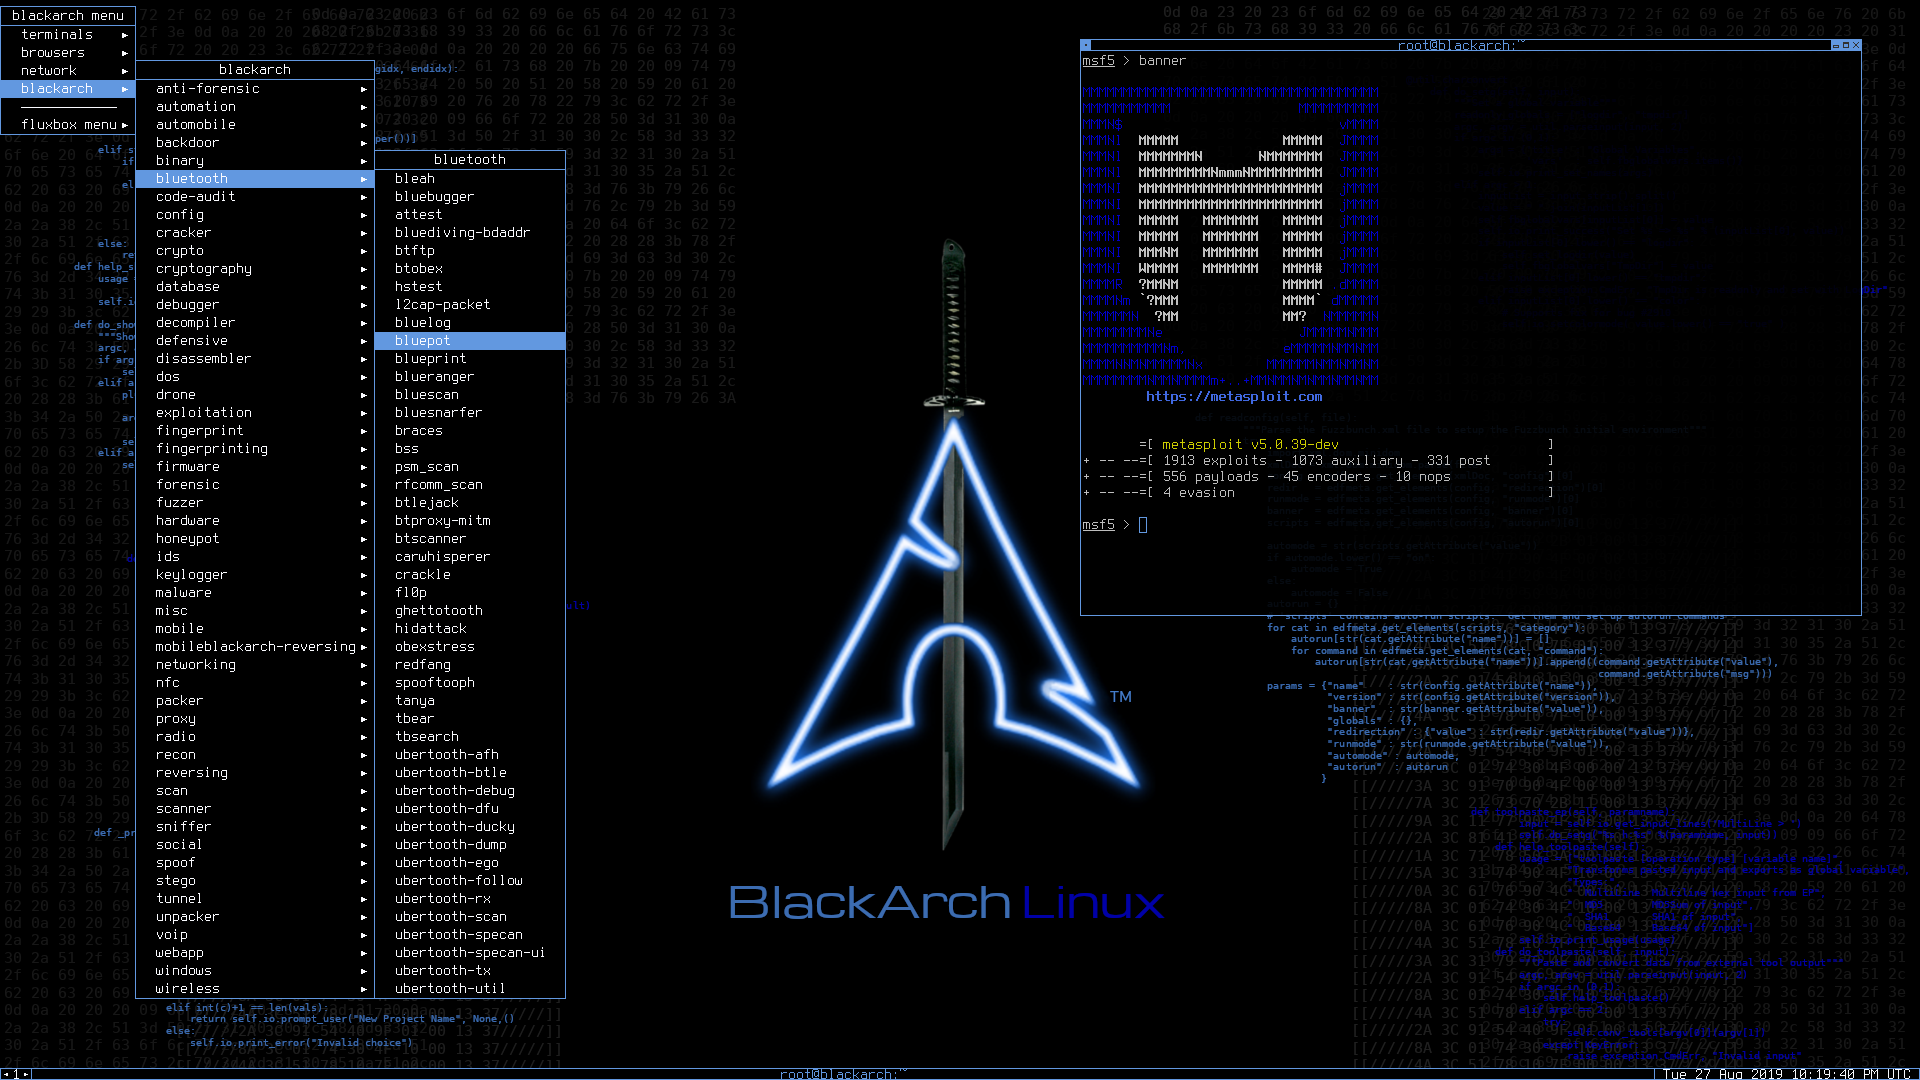 BlackArch Linux with fluxbox